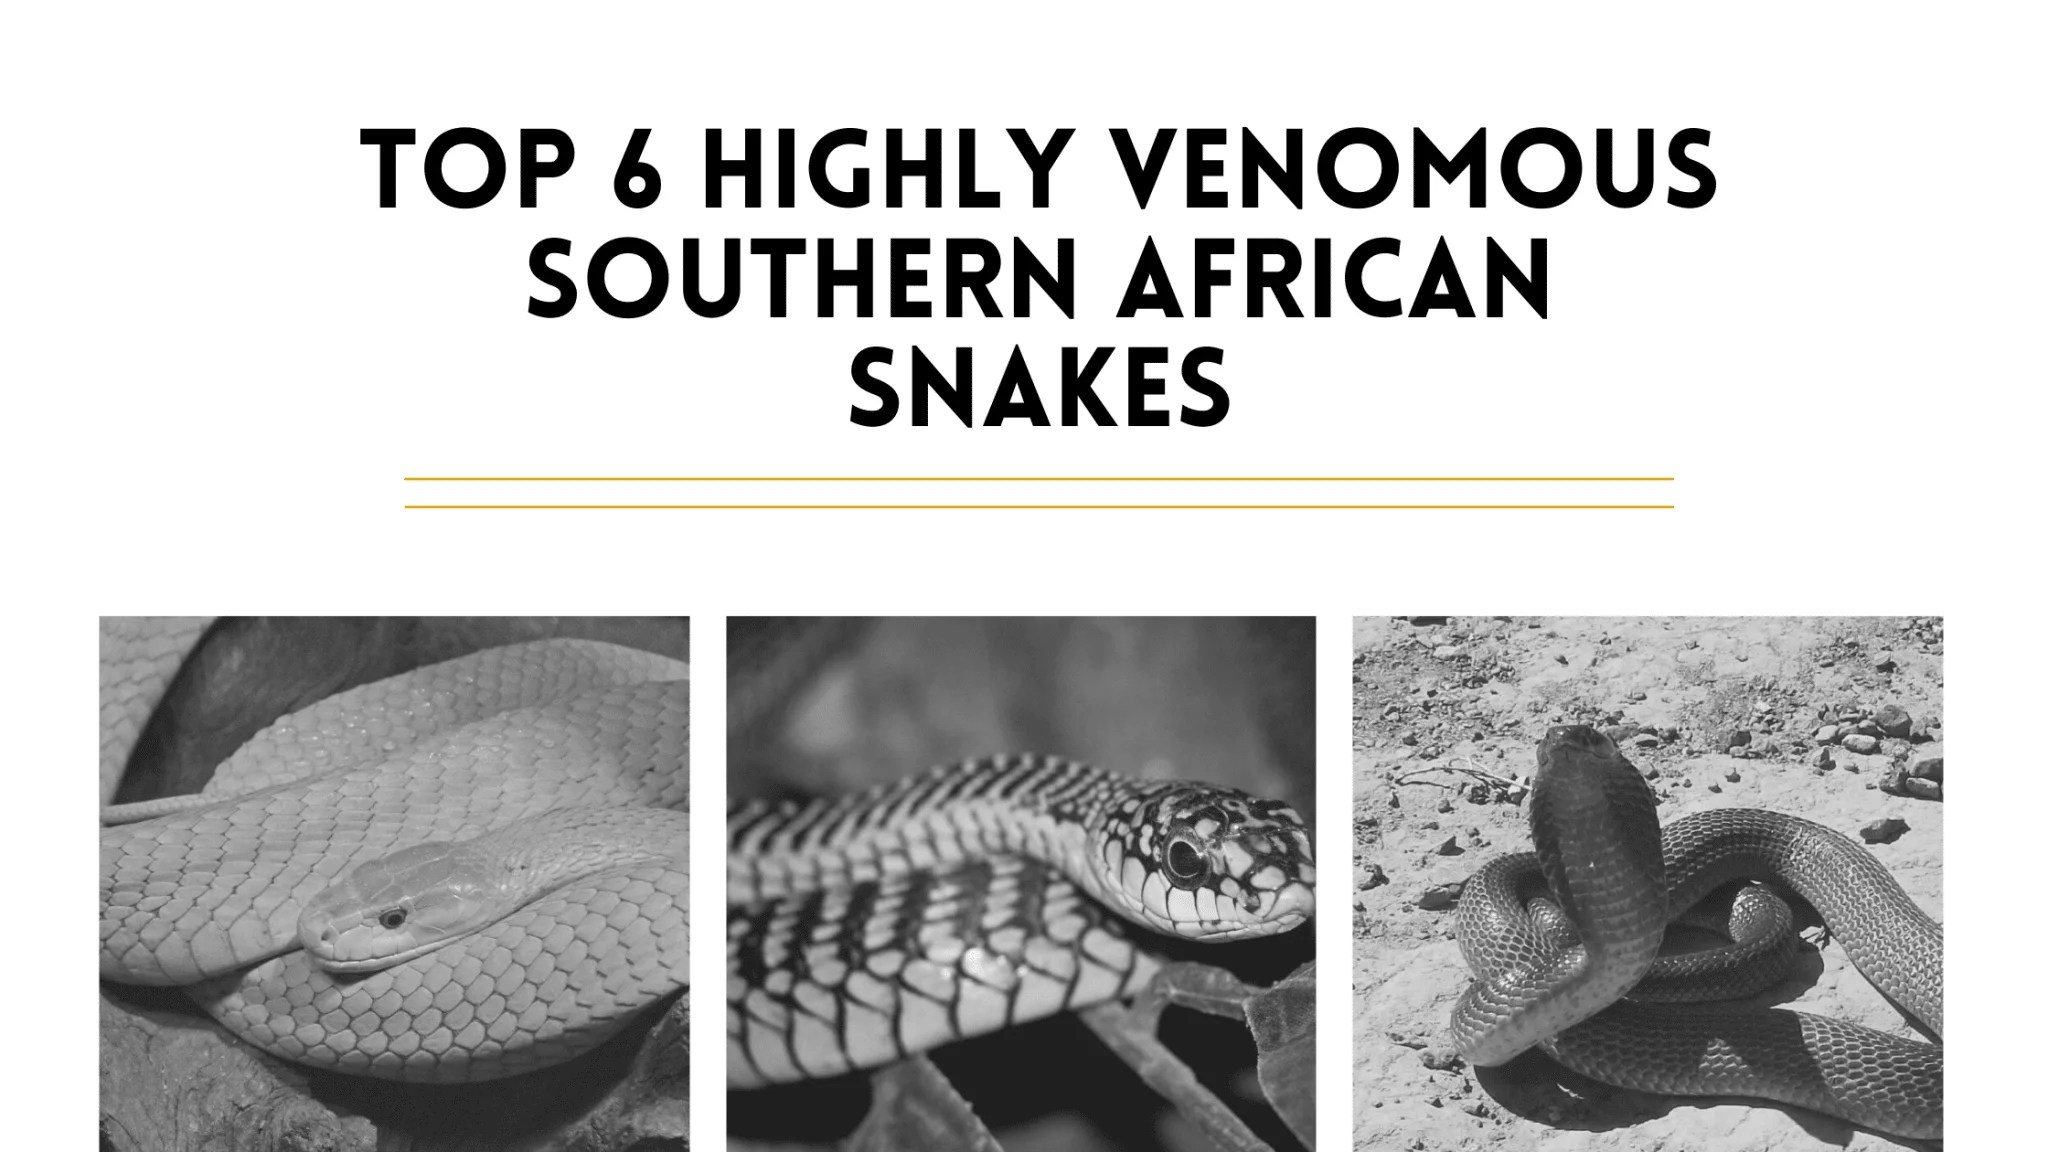 Top 6 Highly Venomous Southern African Snakes